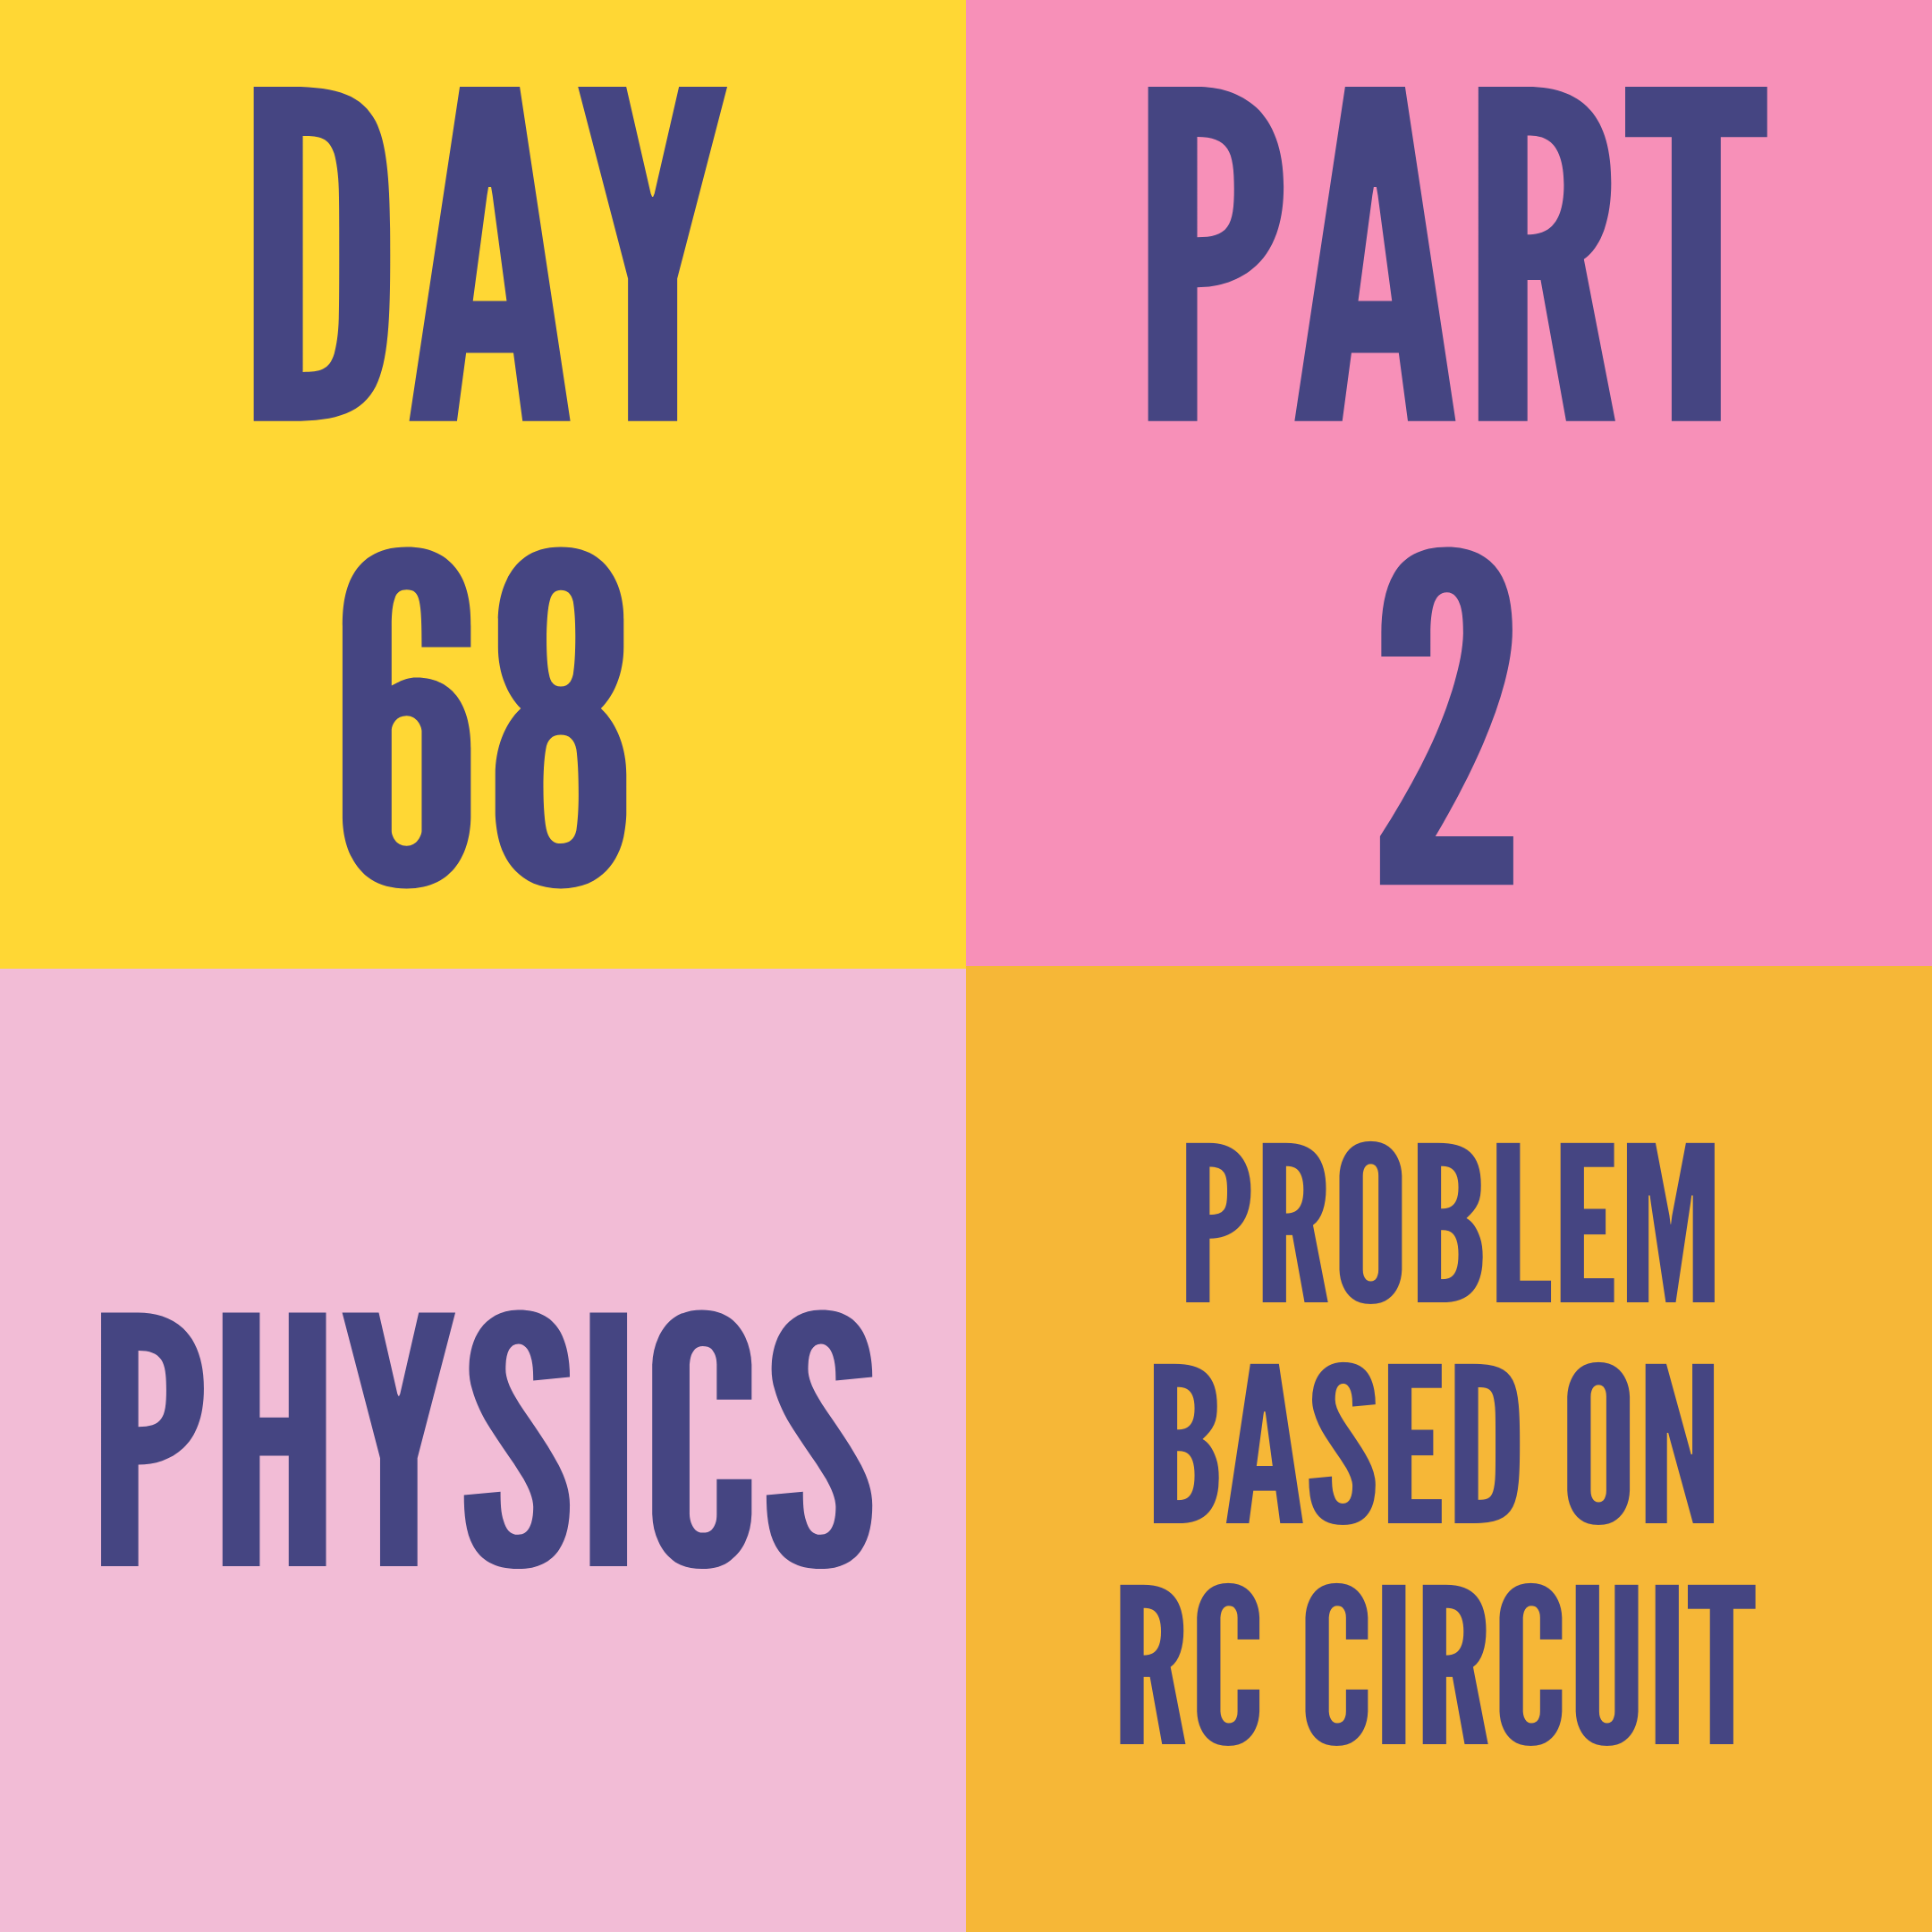 DAY-68 PART-2  PROBLEM BASED ON RC CIRCUIT